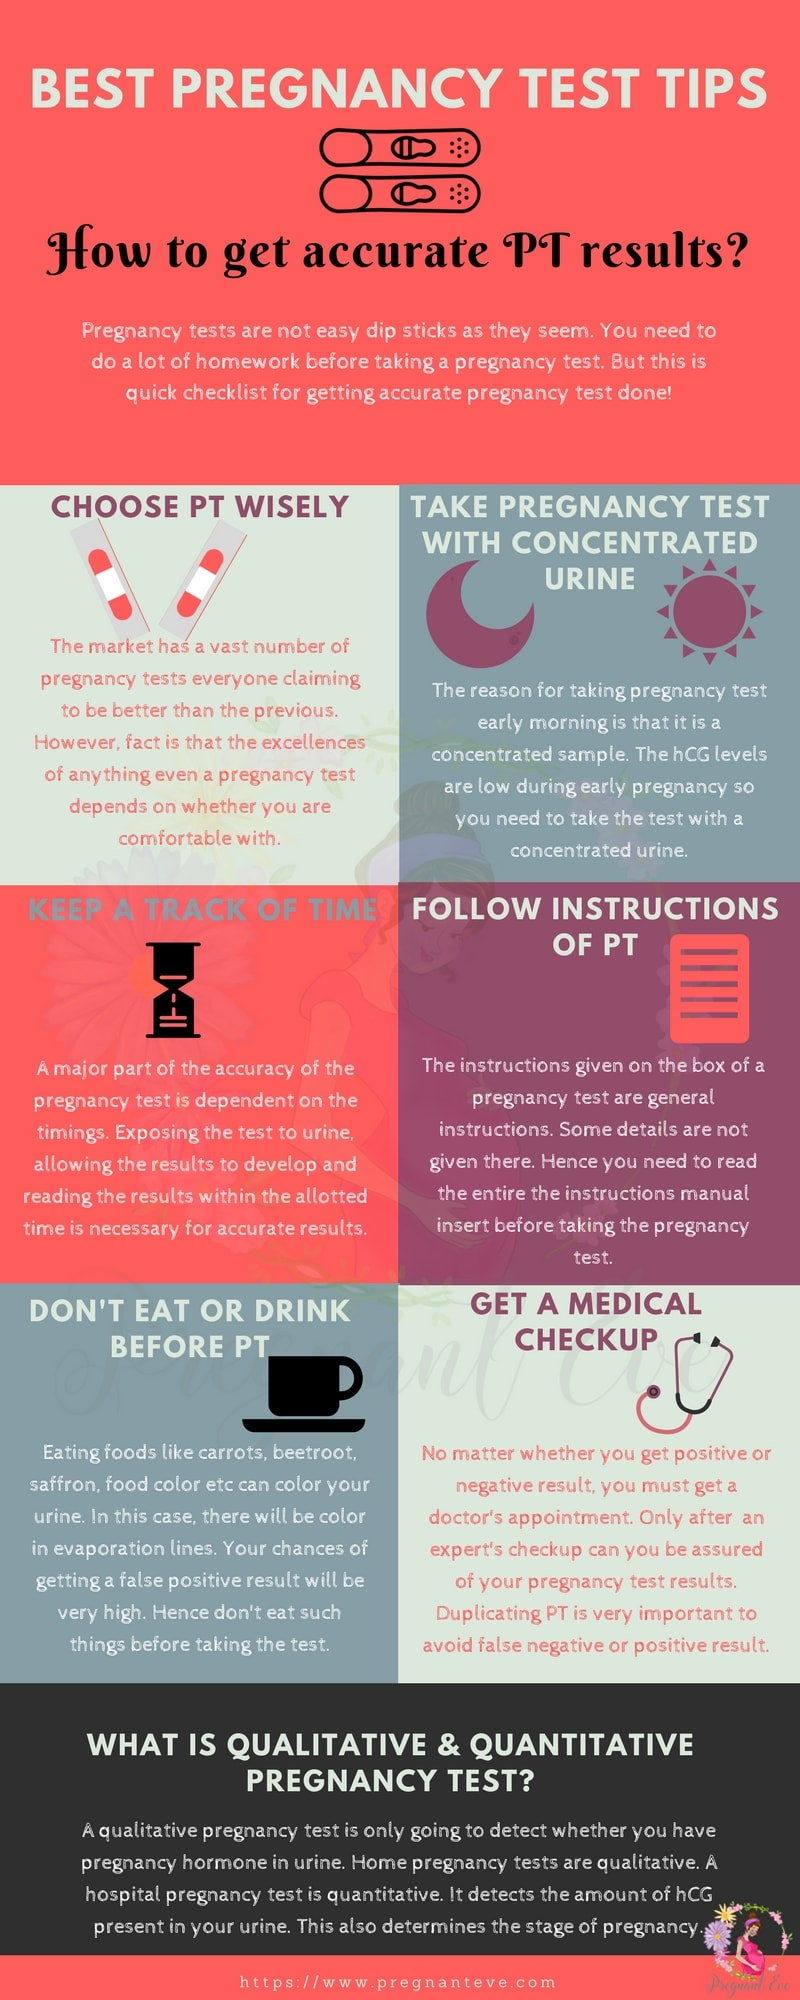 Best Pregnancy Test Tips Infographic